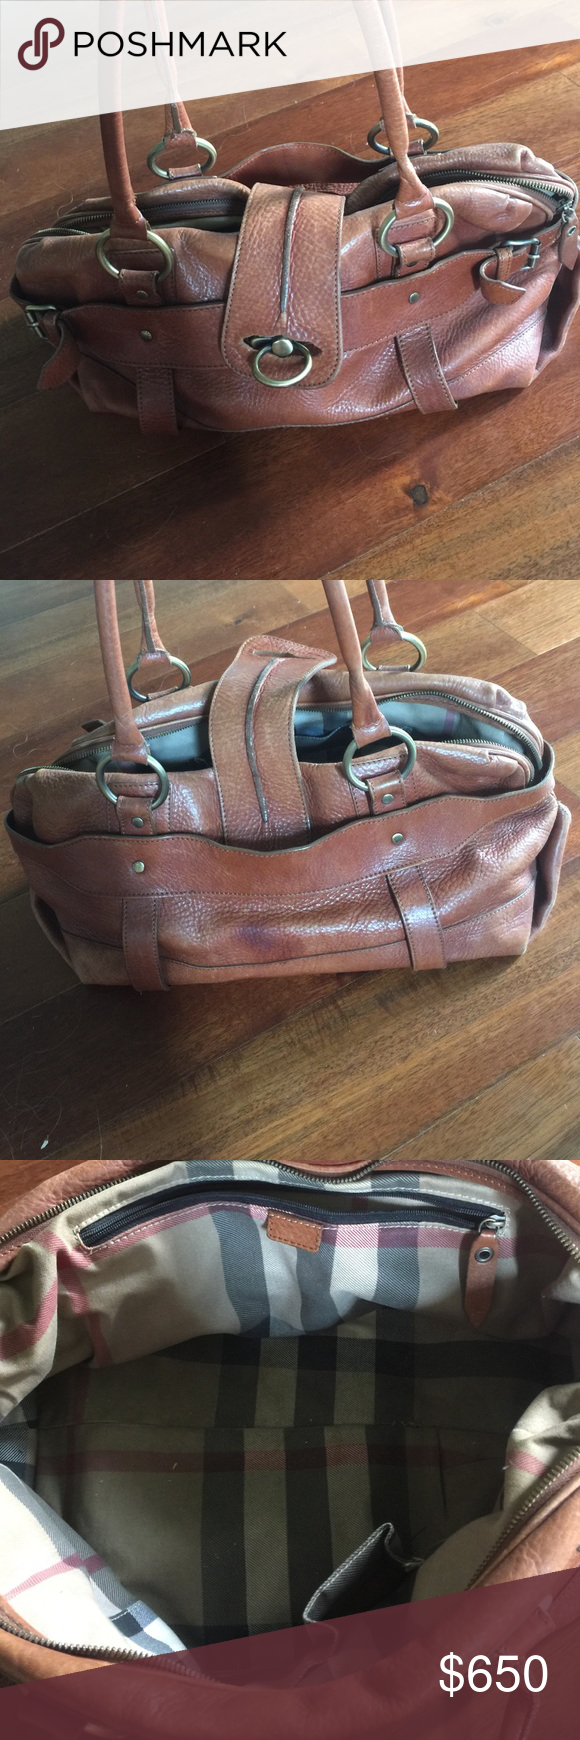 Burberry handbag Authentic Burberry purse. Zippers all still work alittle worn but has a lot of life left. Burberry Bags Shoulder Bags